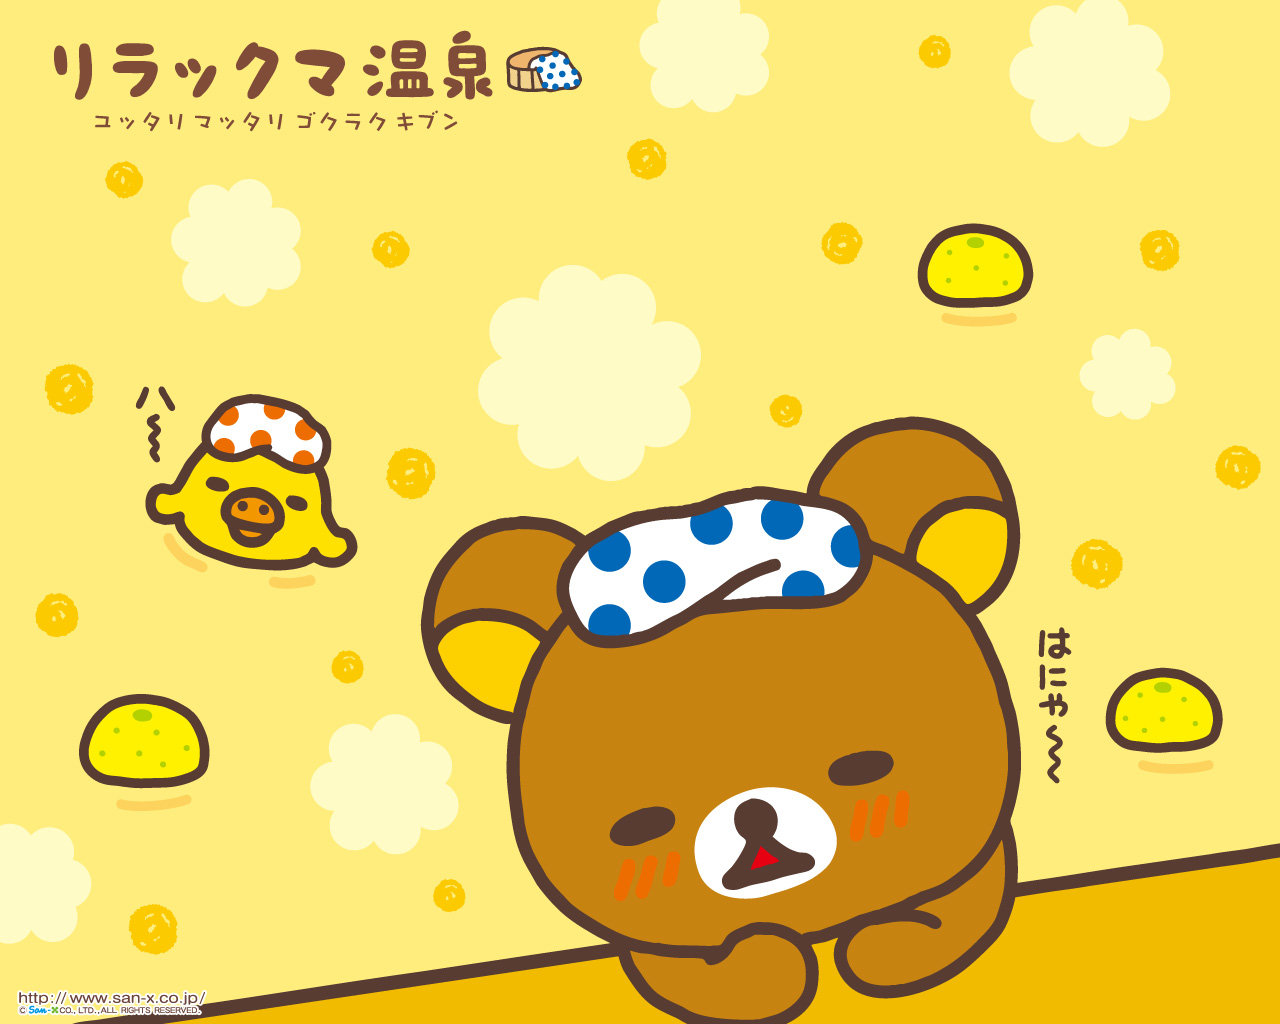 rilakkuma wallpaper january - photo #2